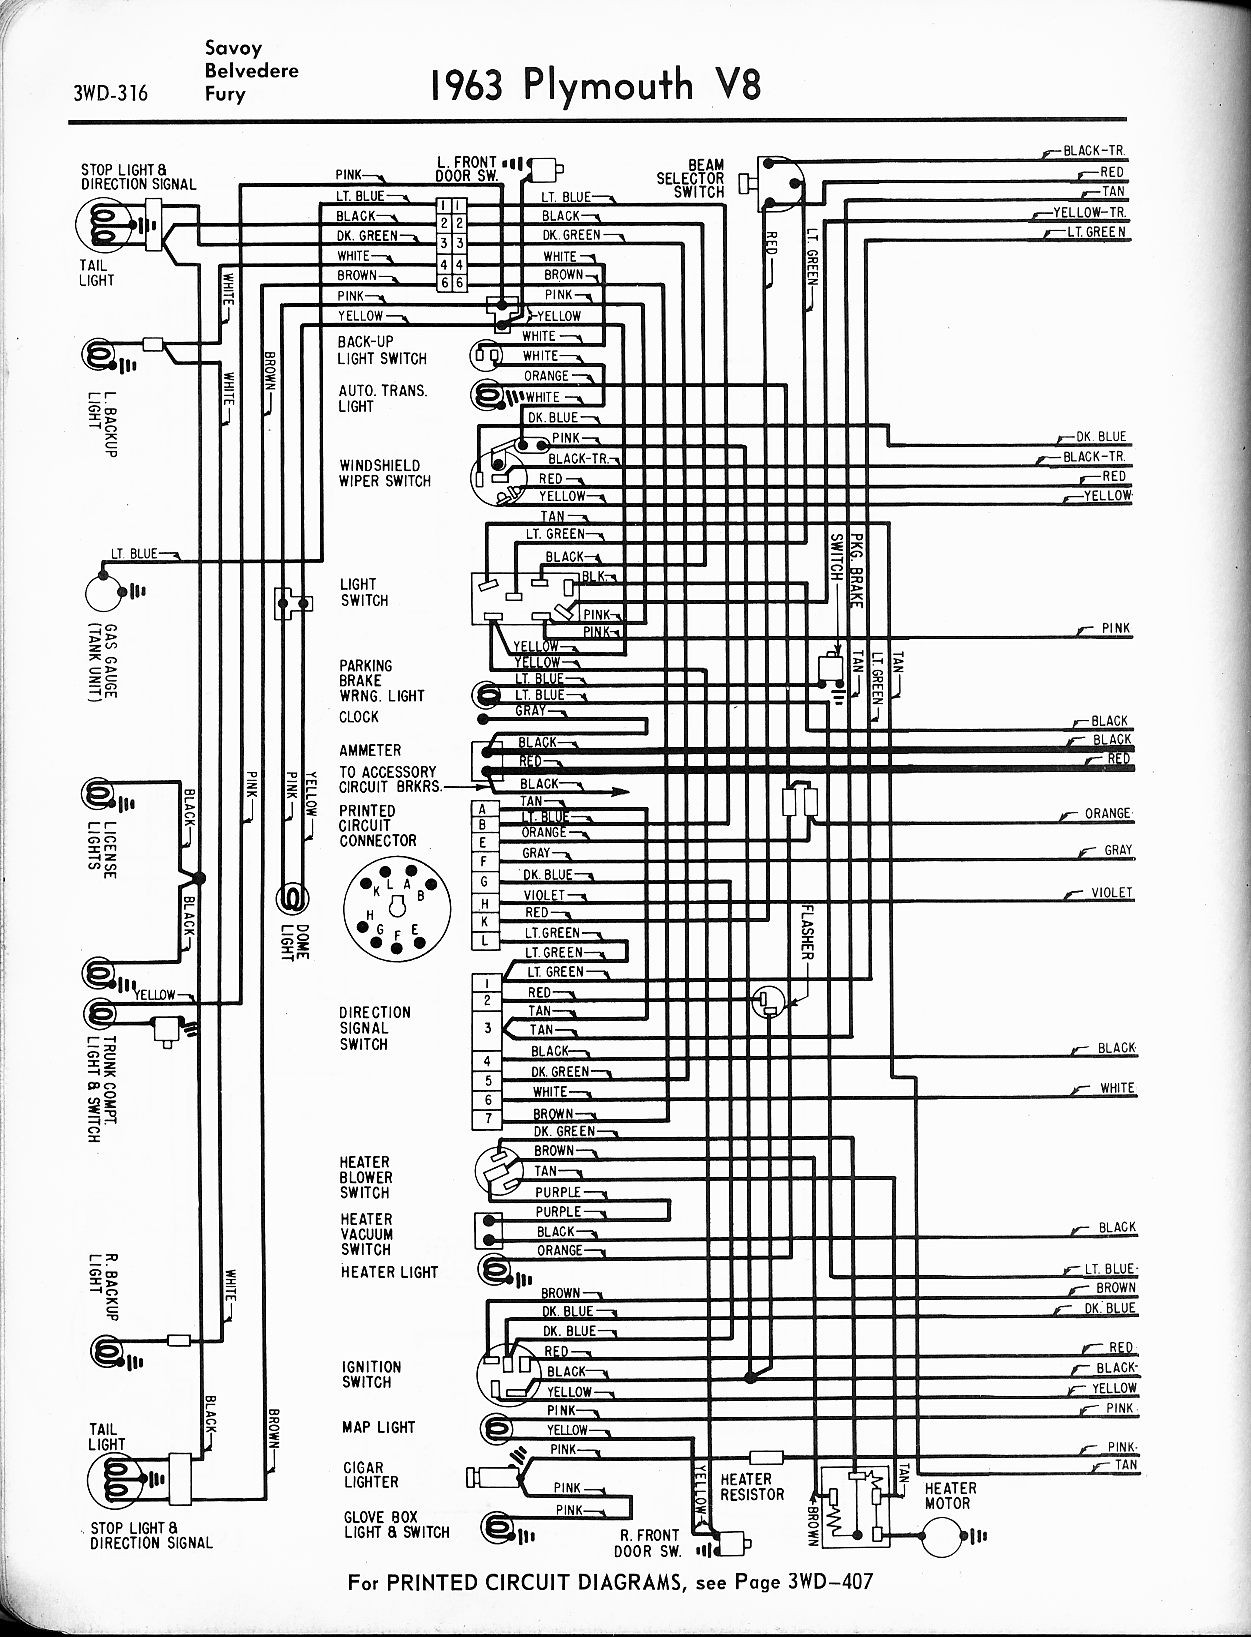 Buick Reatta Wiring Diagram Explained Diagrams 1989 Free Engine Image For User Manual Specifications 2002